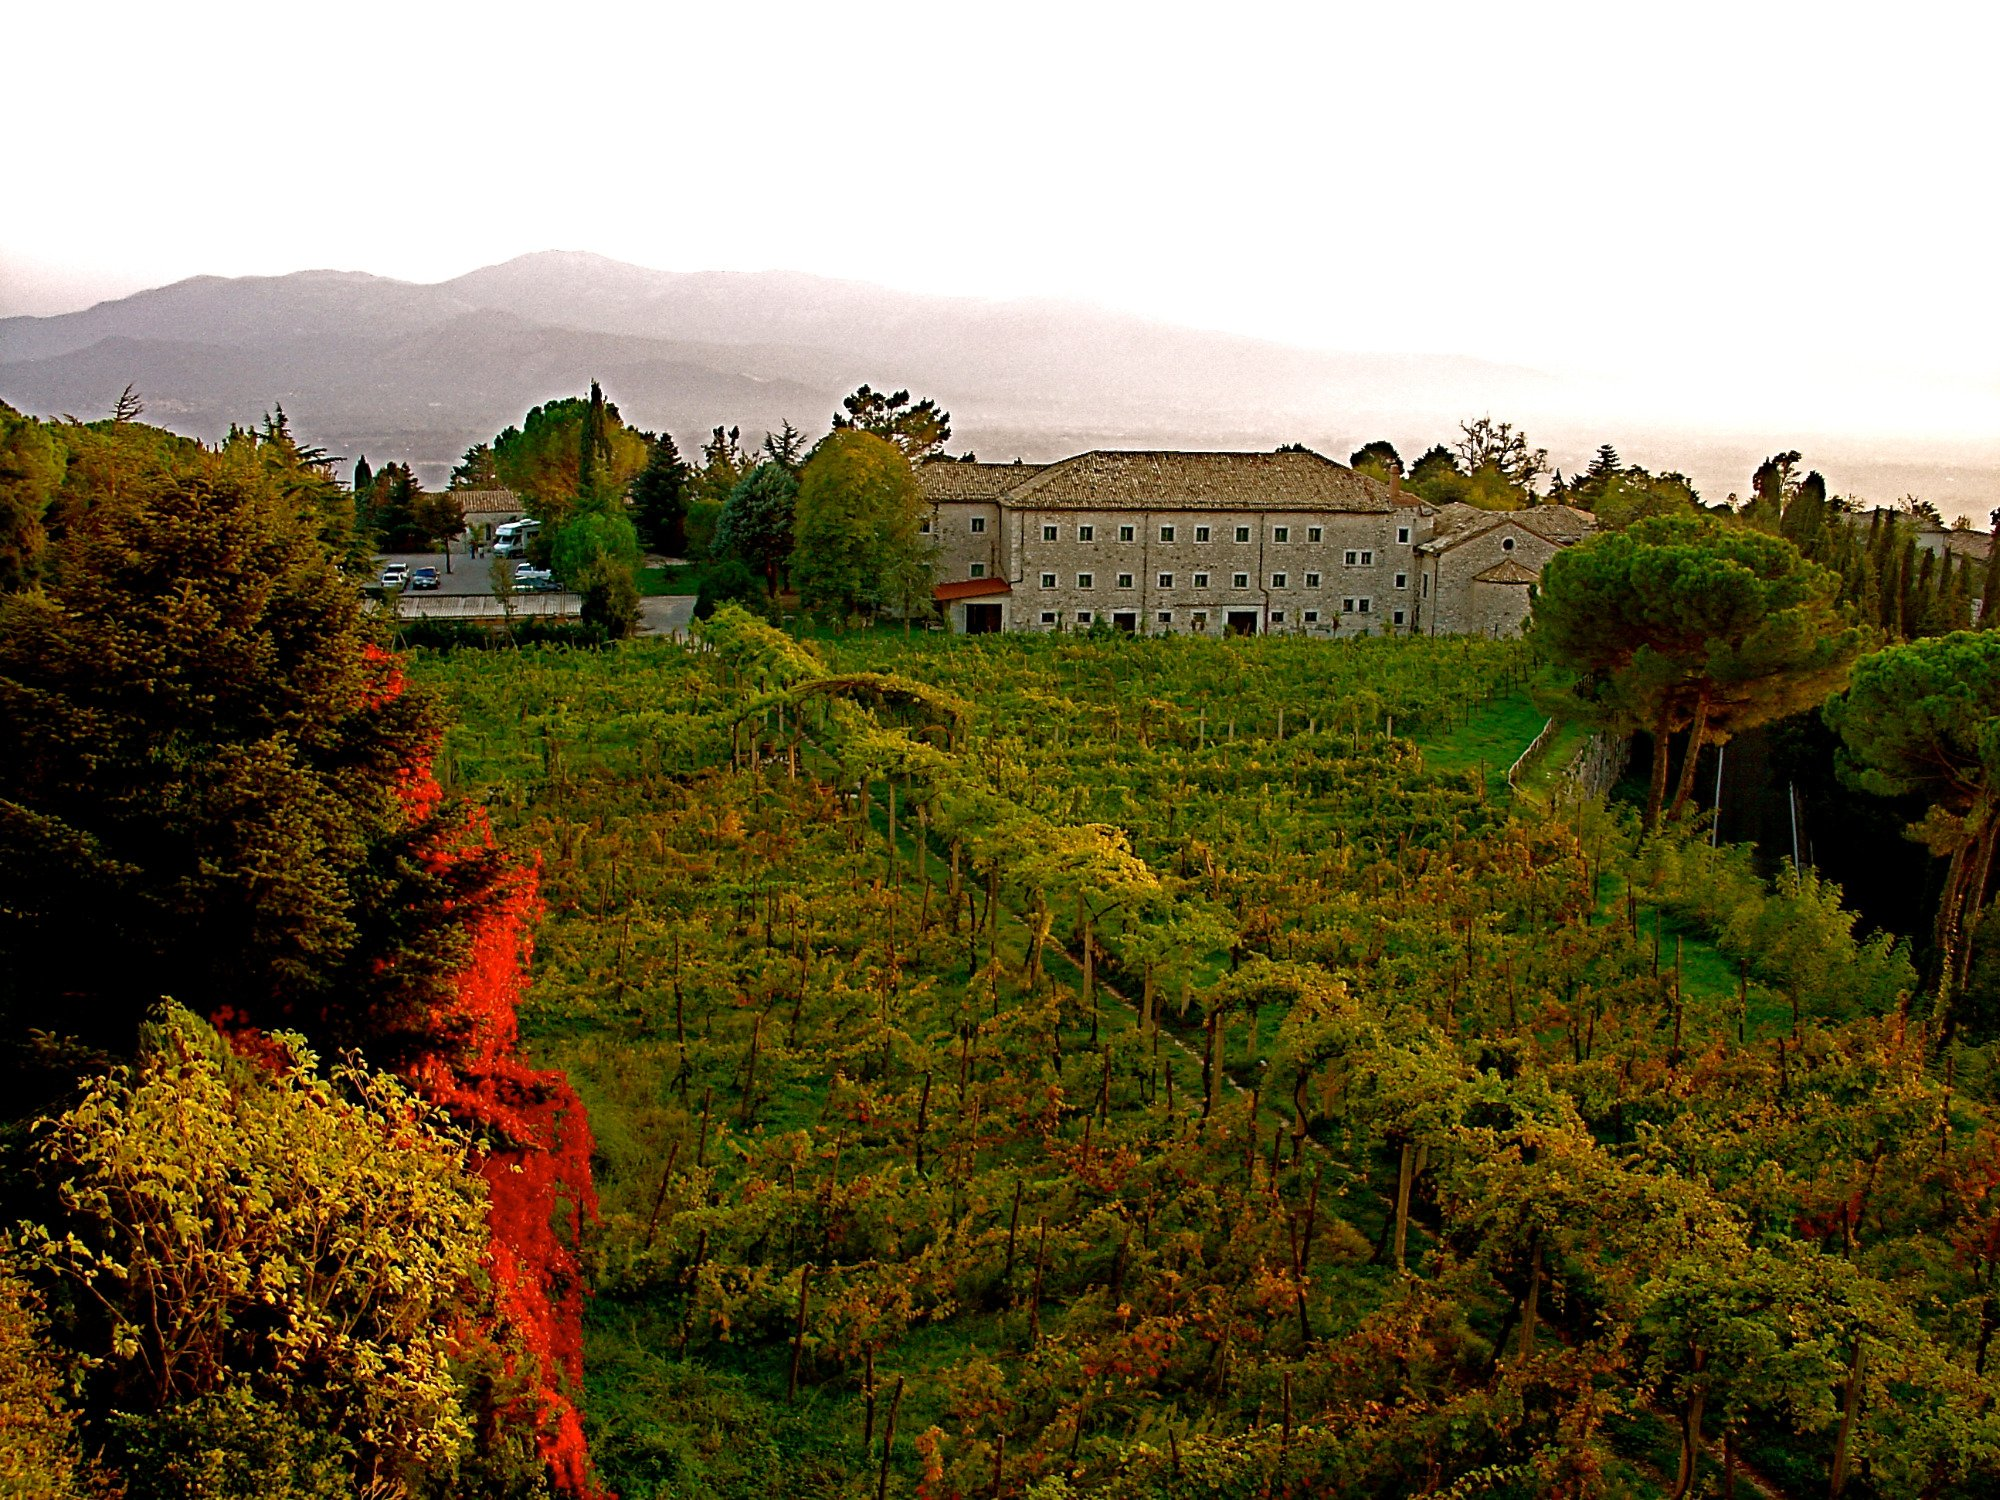 Quarters for workers and guests sit amit a vineyard just below the monastery